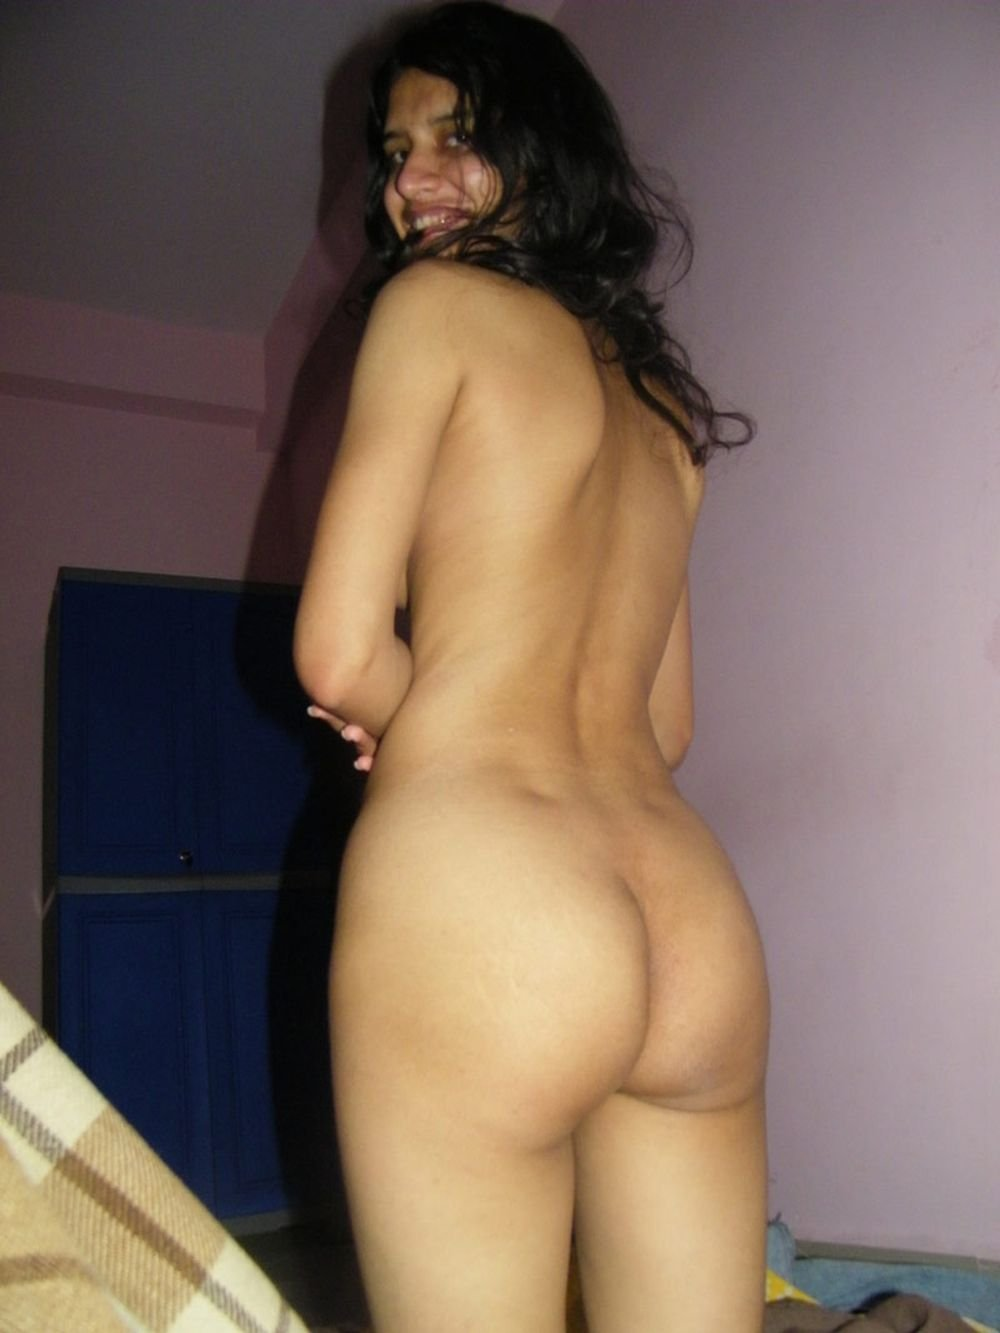 Desi girls bare butts pics indian porn xxx collection